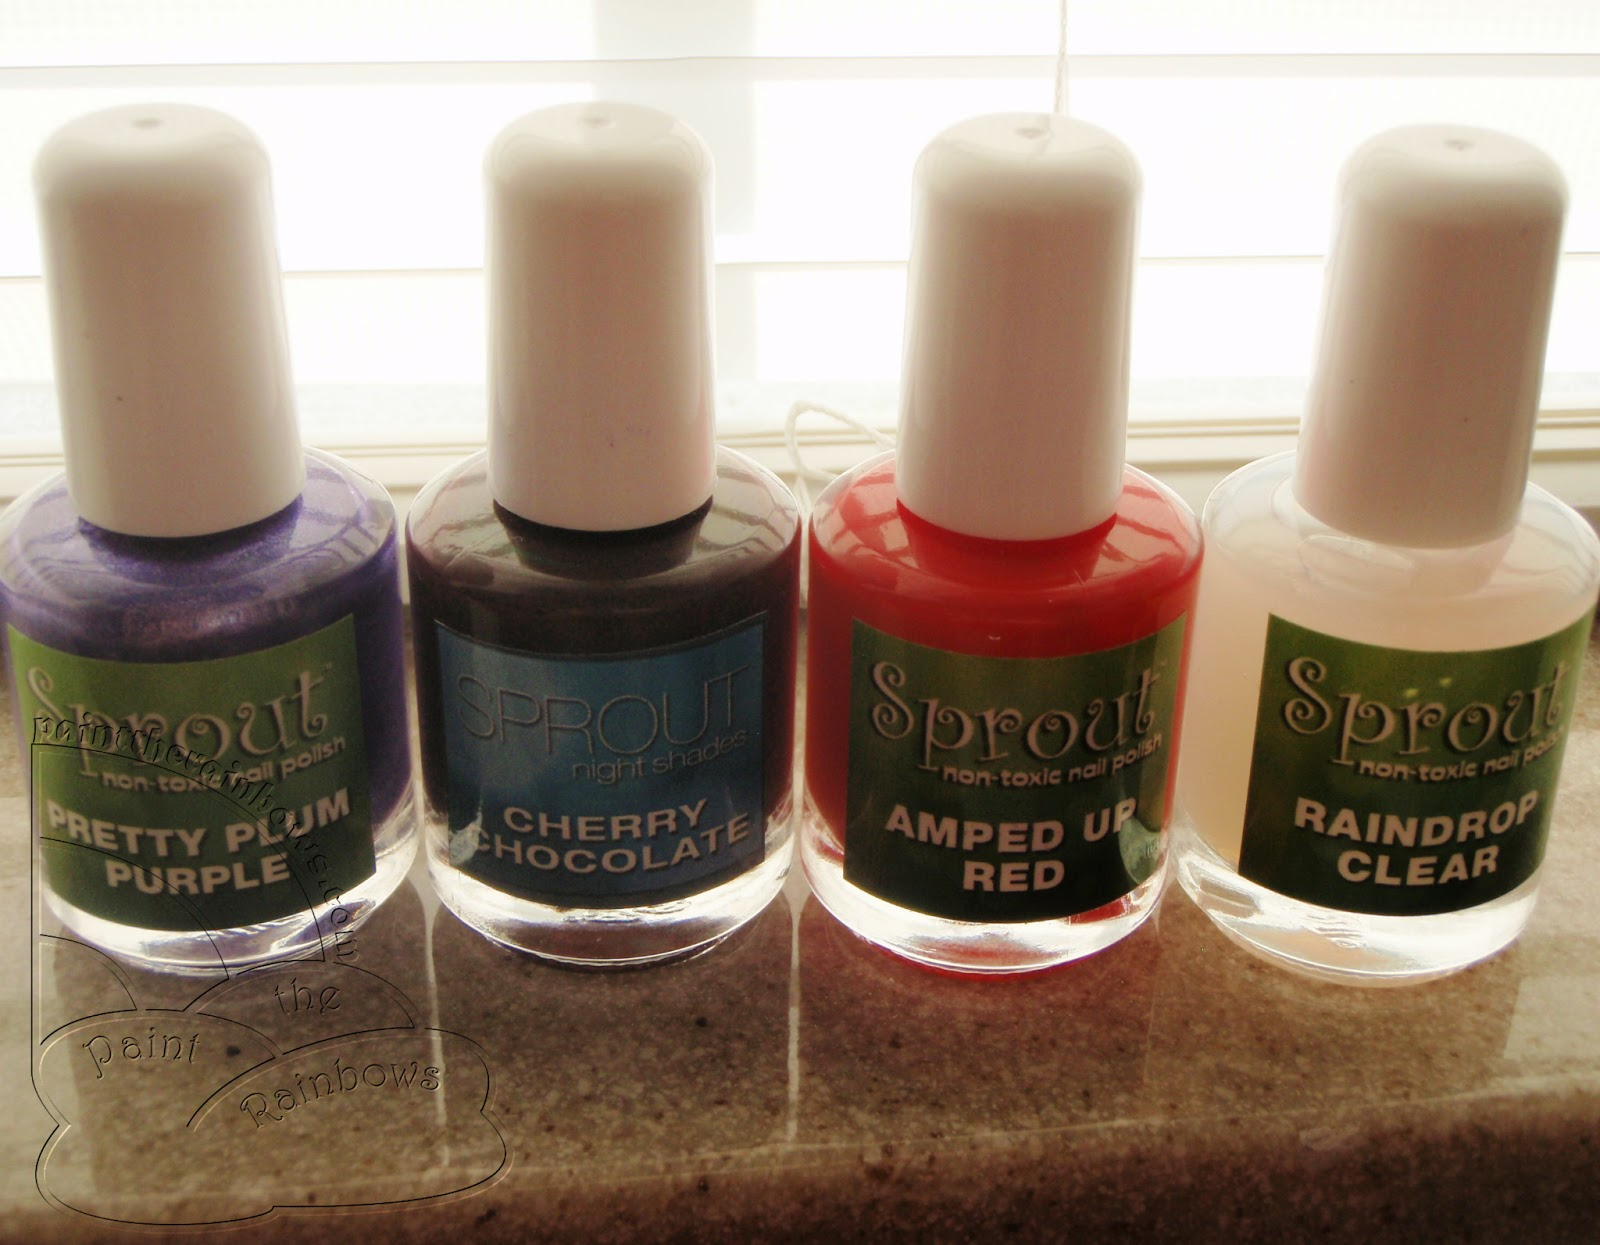 paint the rainbows ☆彡: Sprout Non-Toxic Nail Polish Swatches and ...